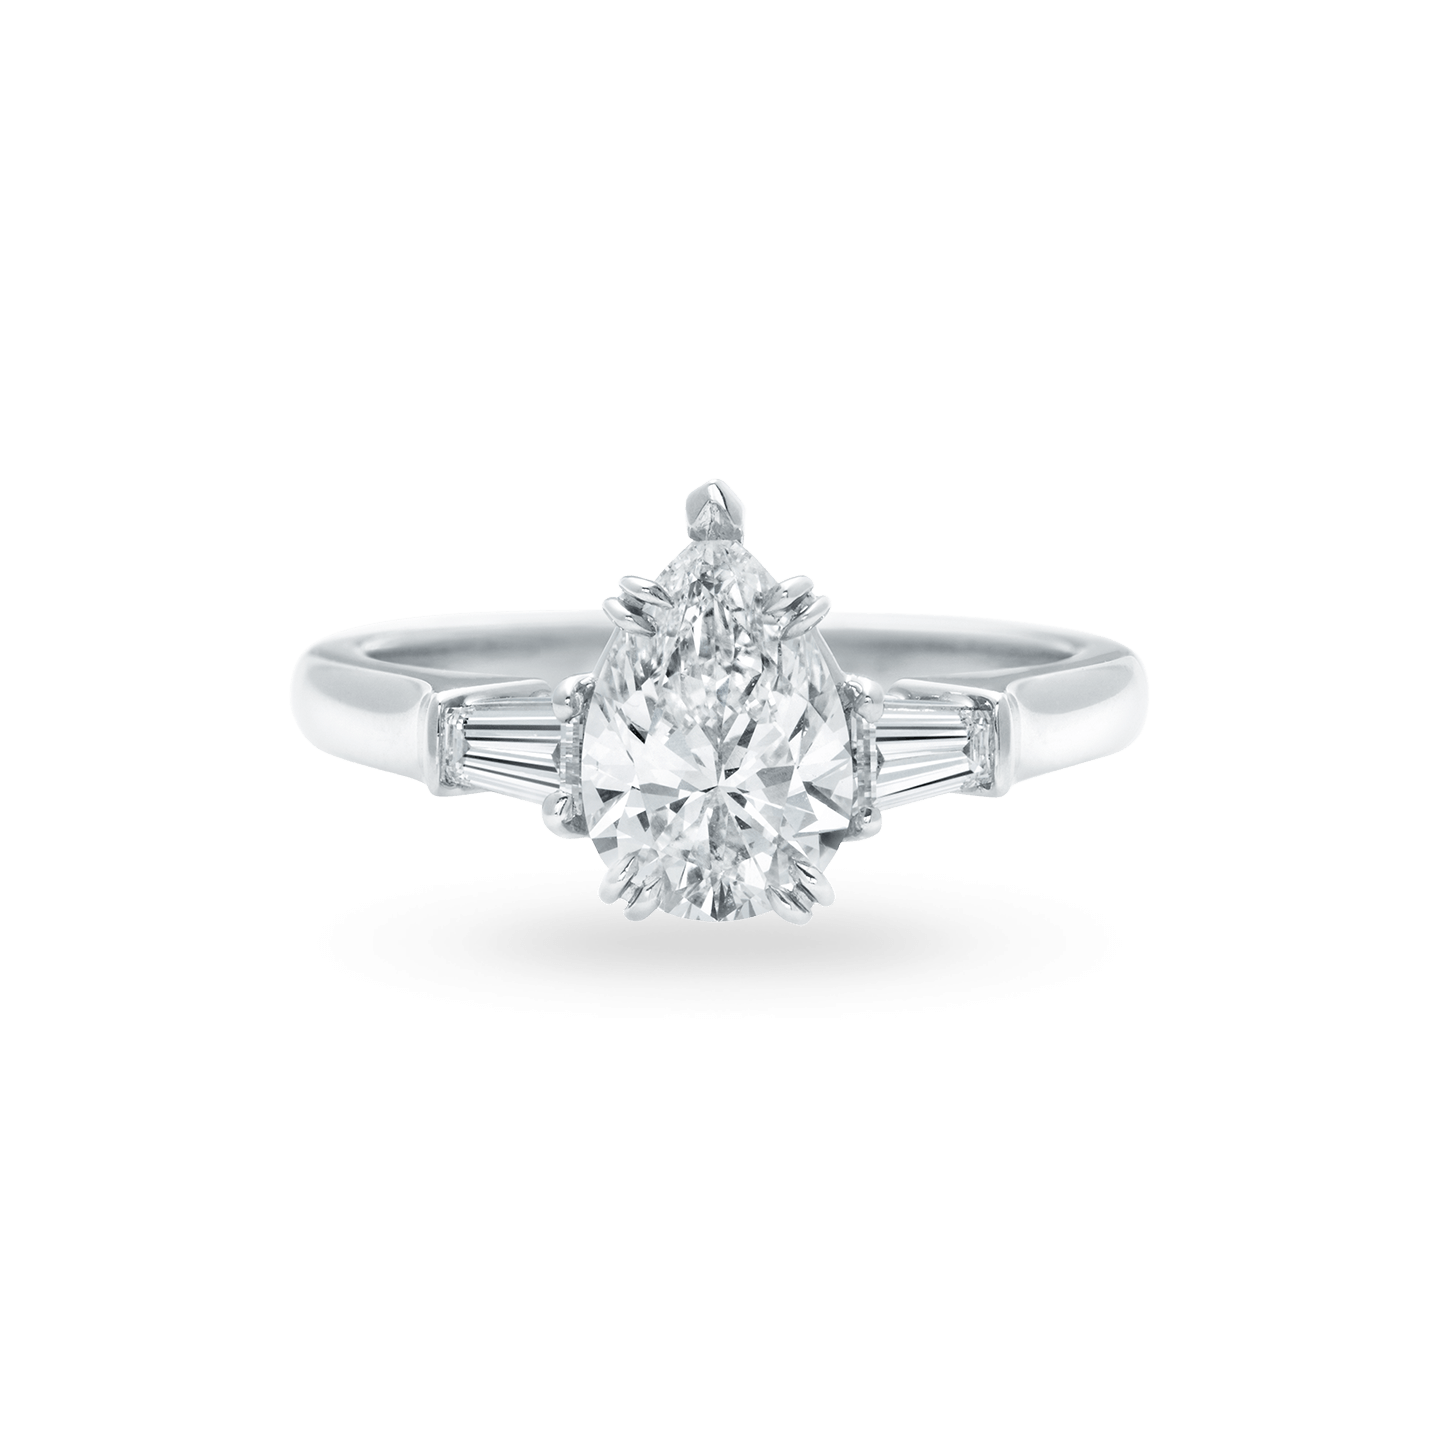 Classic Winston Pear-Shaped Engagement Ring with Tapered Baguette Side Stones, Product Image 1